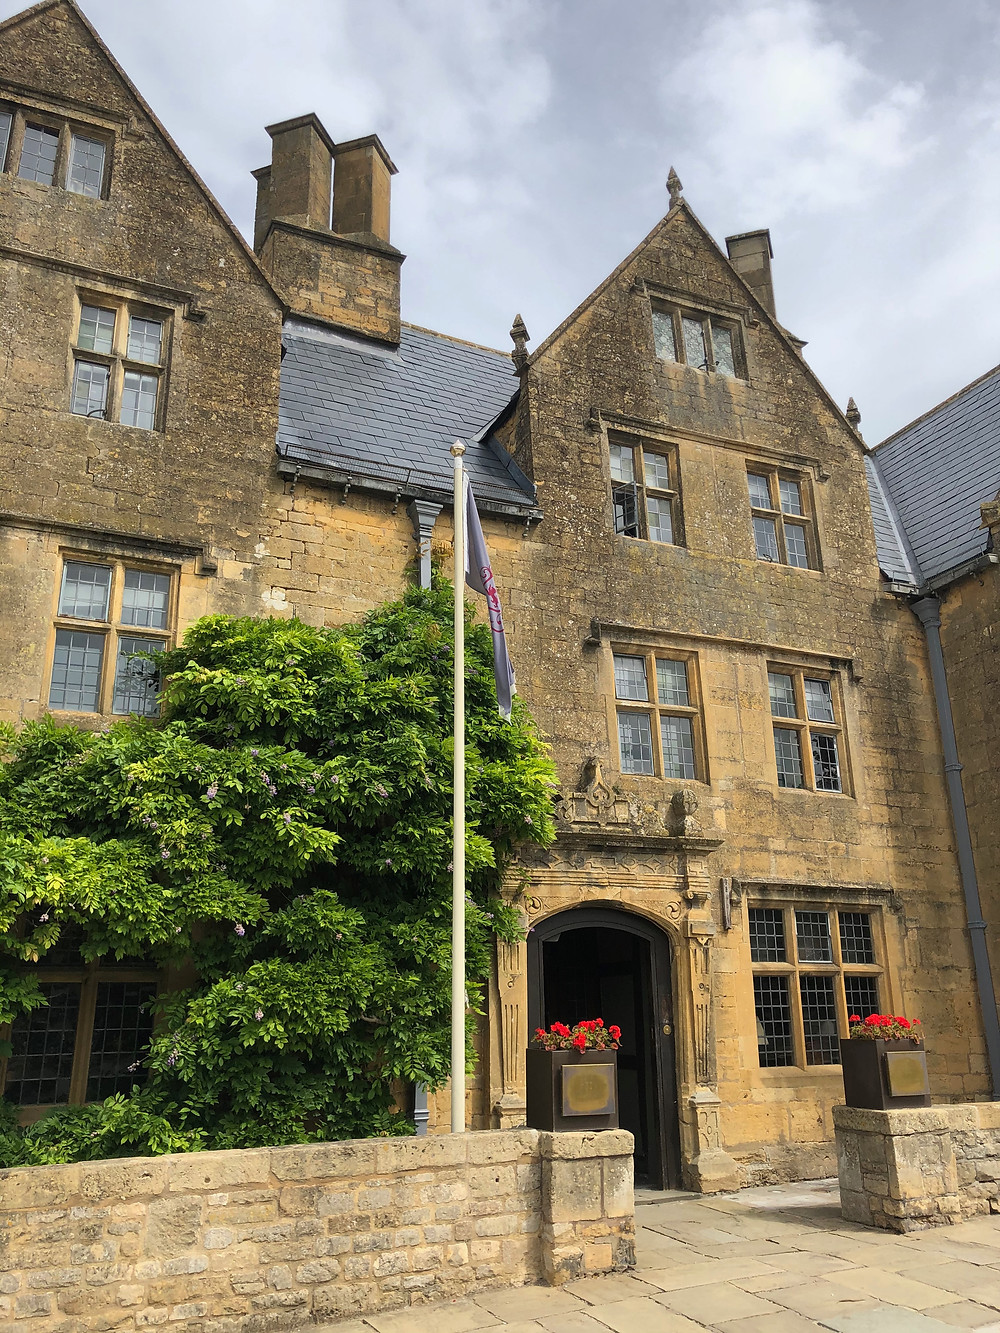 Lygon Arms Hotel in the heart of Broadway dates back to Medieval times.